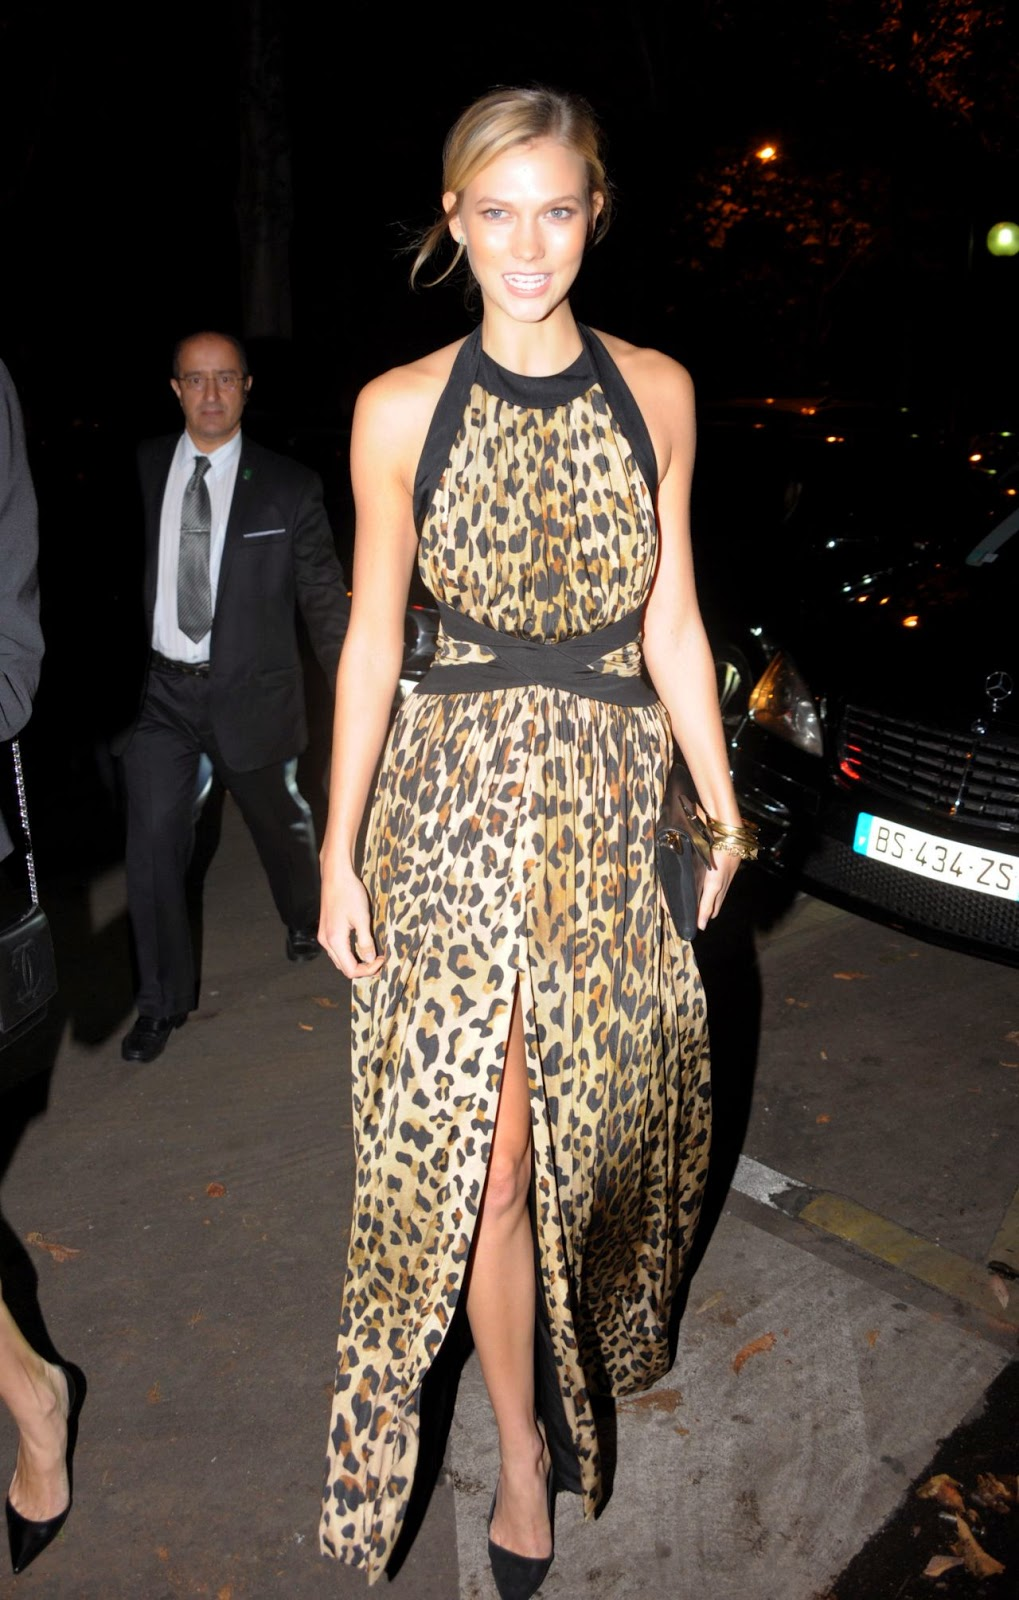 Karlie Kloss is elegant in a leopard print dress out and about in Paris